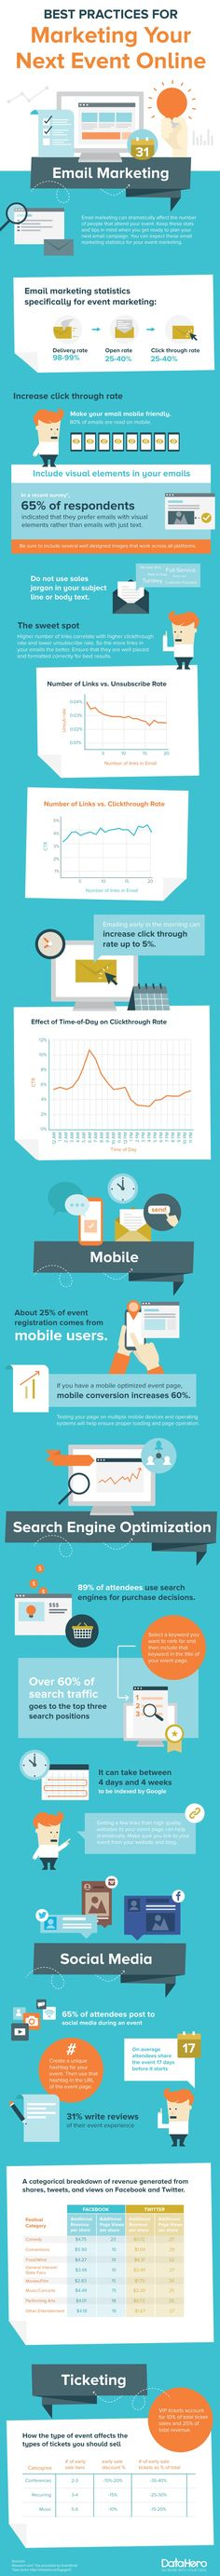 Infographic: Best Practices for Marketing Your Next Event Online - @visualistan https://www.whenworx.com